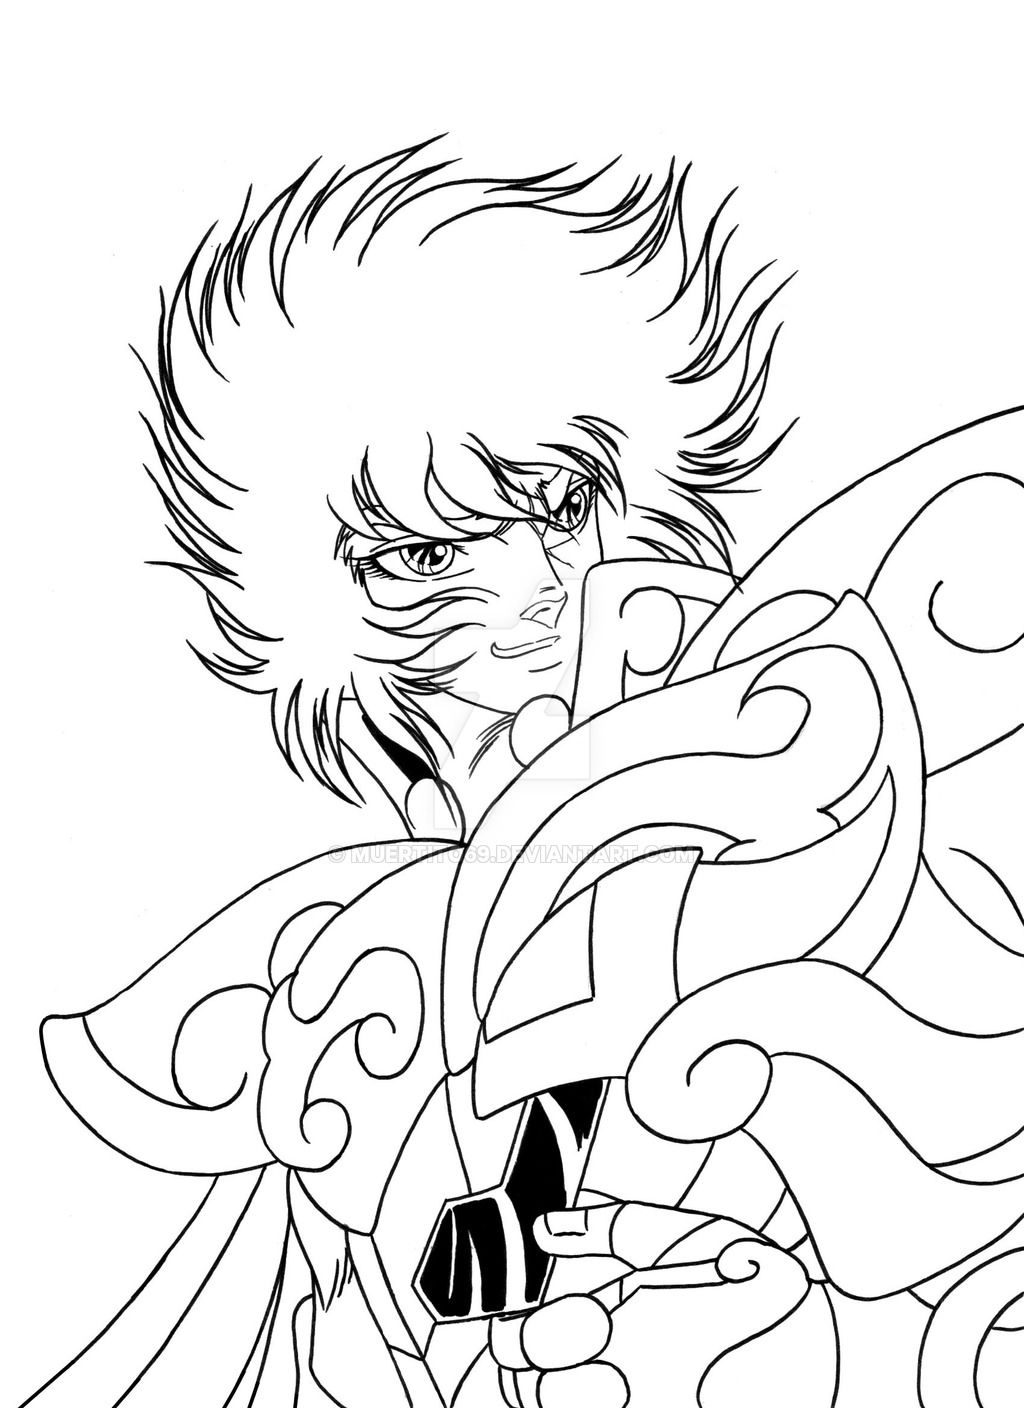 ikki_de_leo_ink_saint_seiya_by_muertito69 | Coloriage LES CHEVALIERS ...